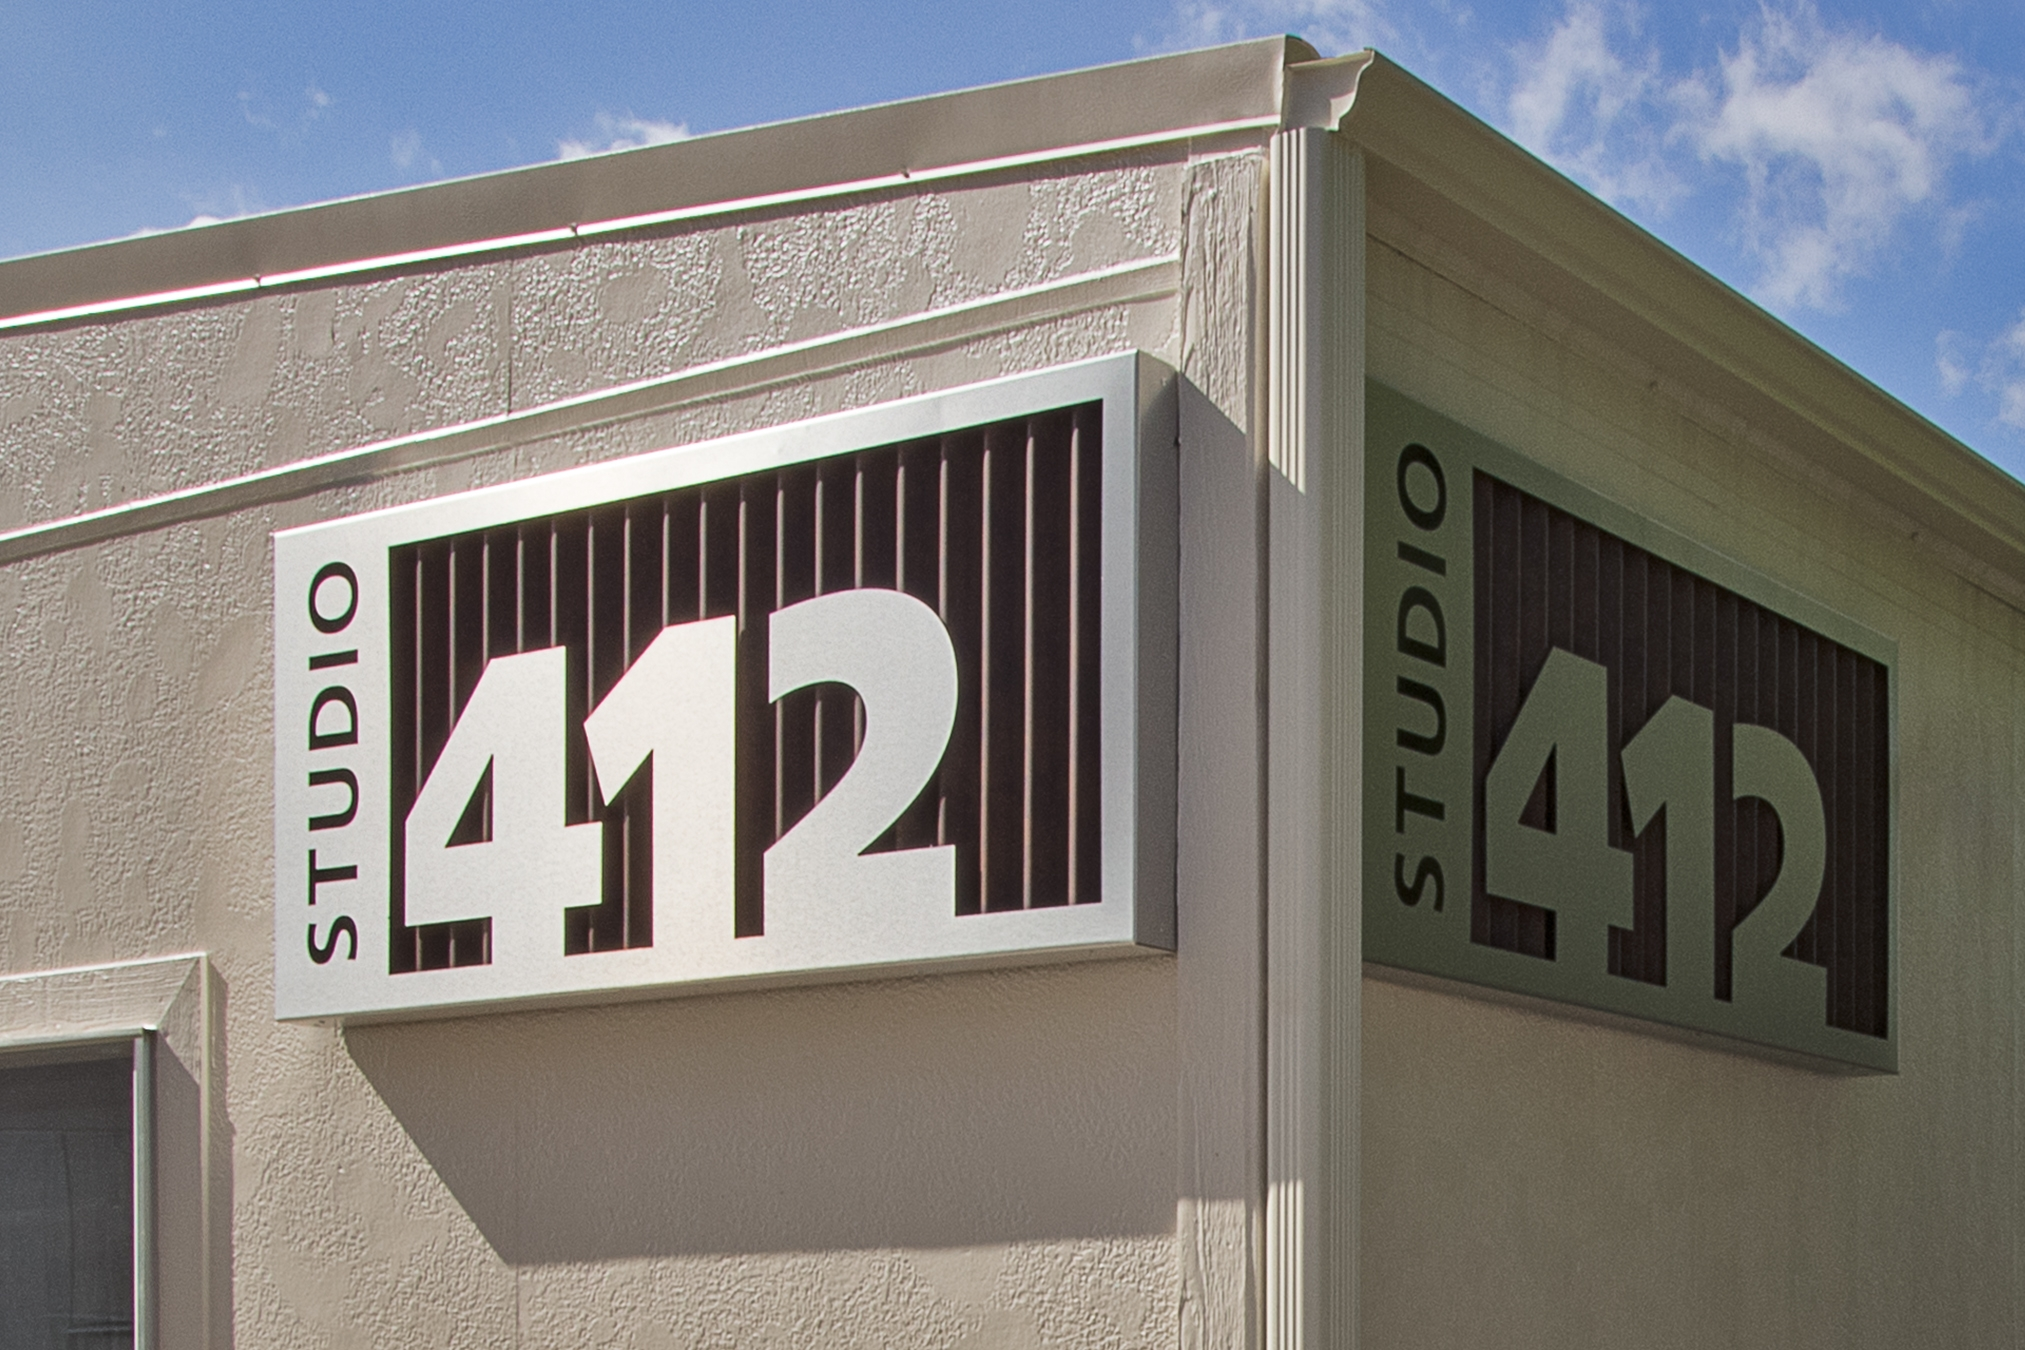 Youth Ministry Custom Themed Building Signage